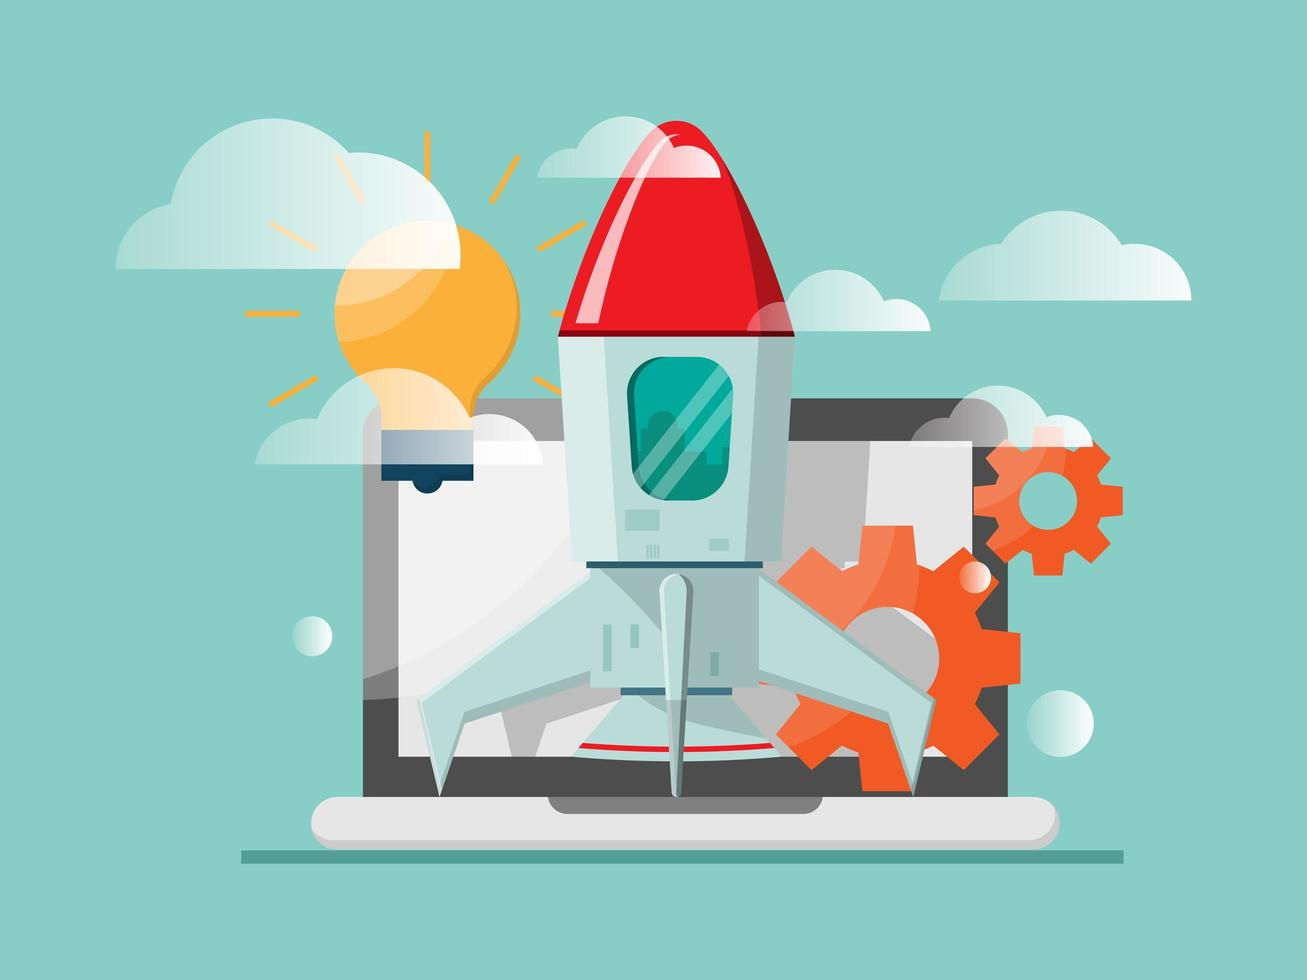 new business startup concept vector